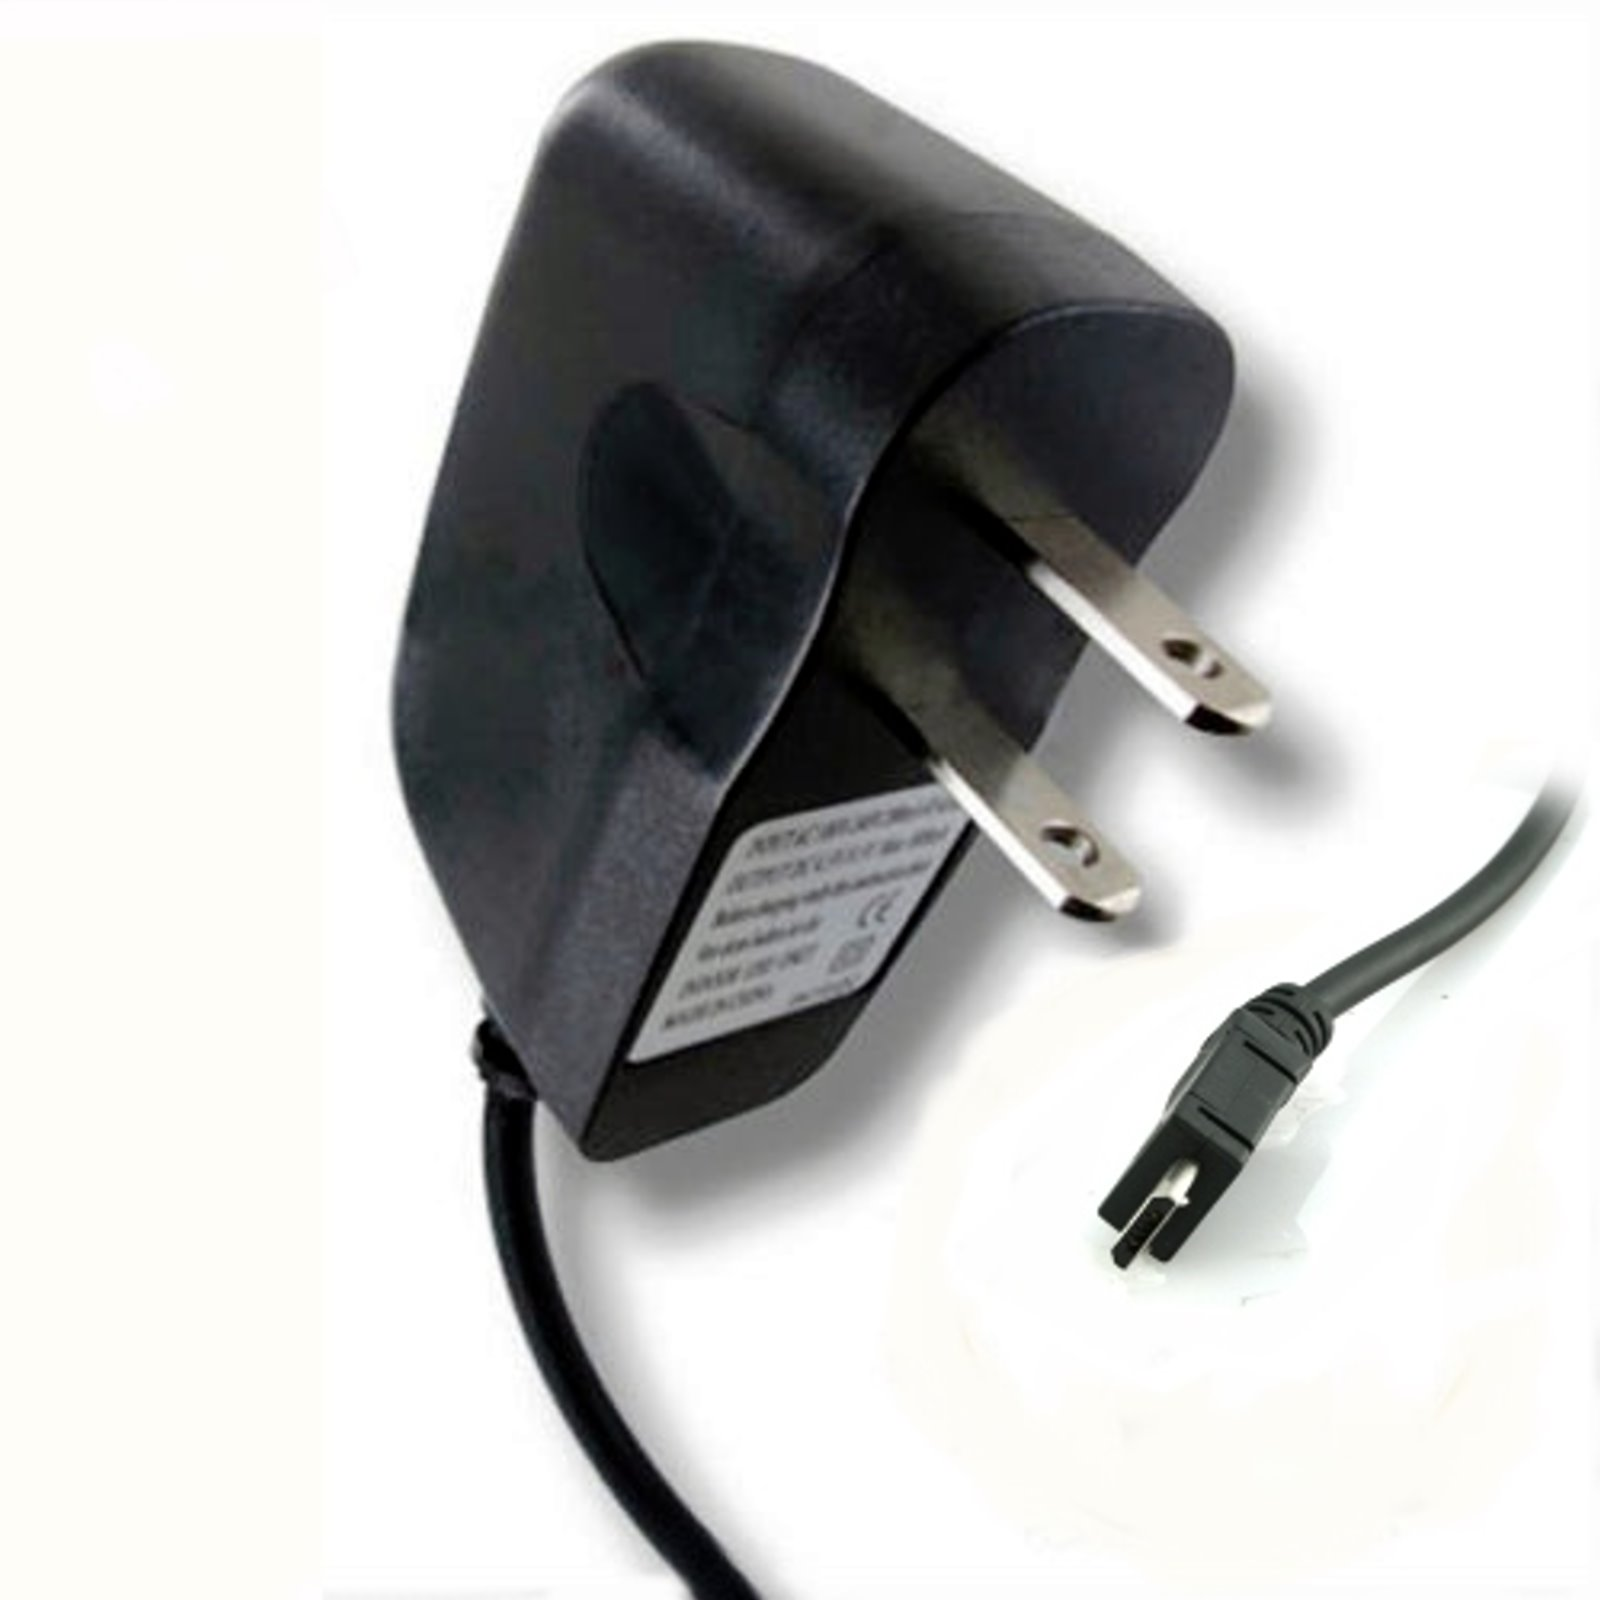 Home Wall Travel Charger FOR AT&T Z998* 3 feet long *